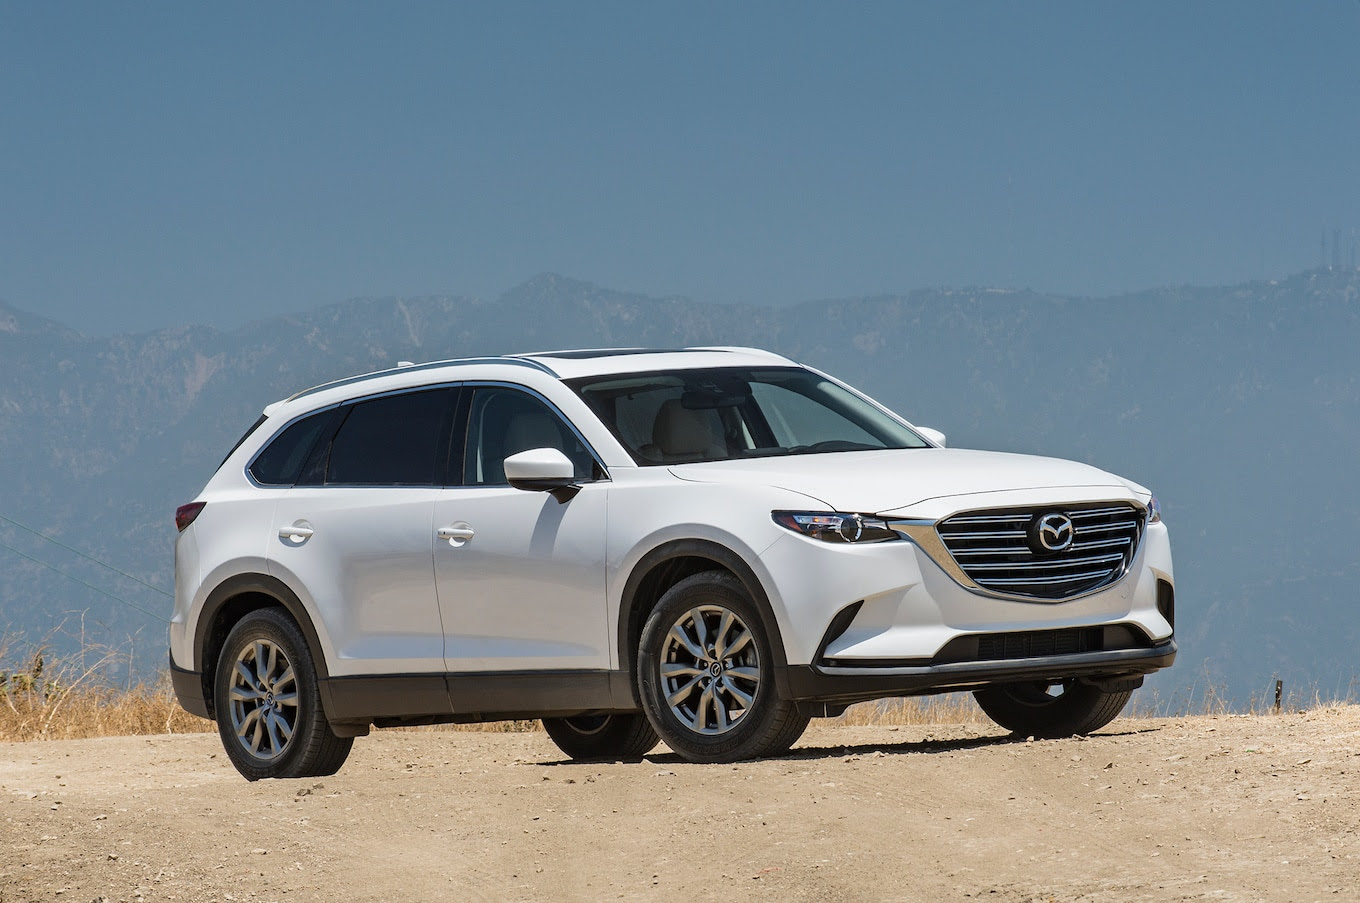 2017 Mazda CX9 Touring AWD Arrival  Motor Trend